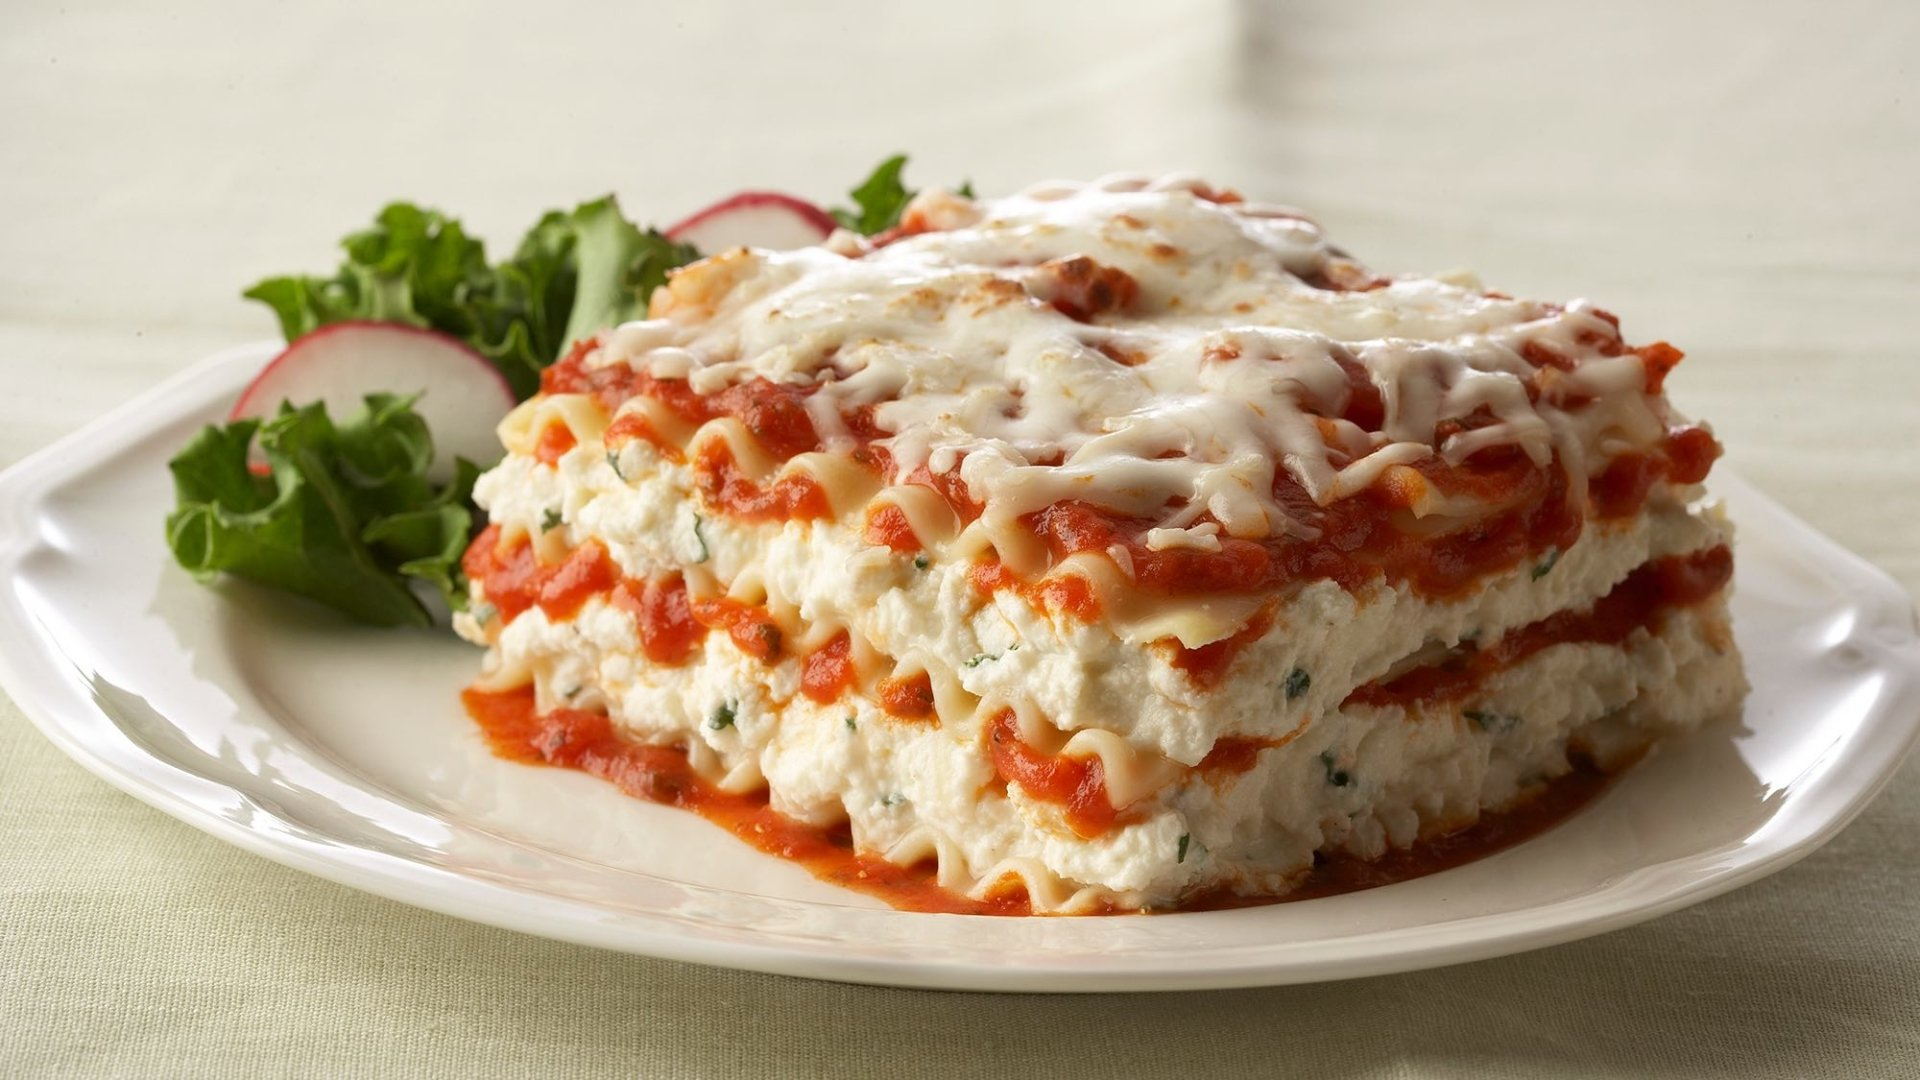 Food - Lasagna  Food Meal Wallpaper